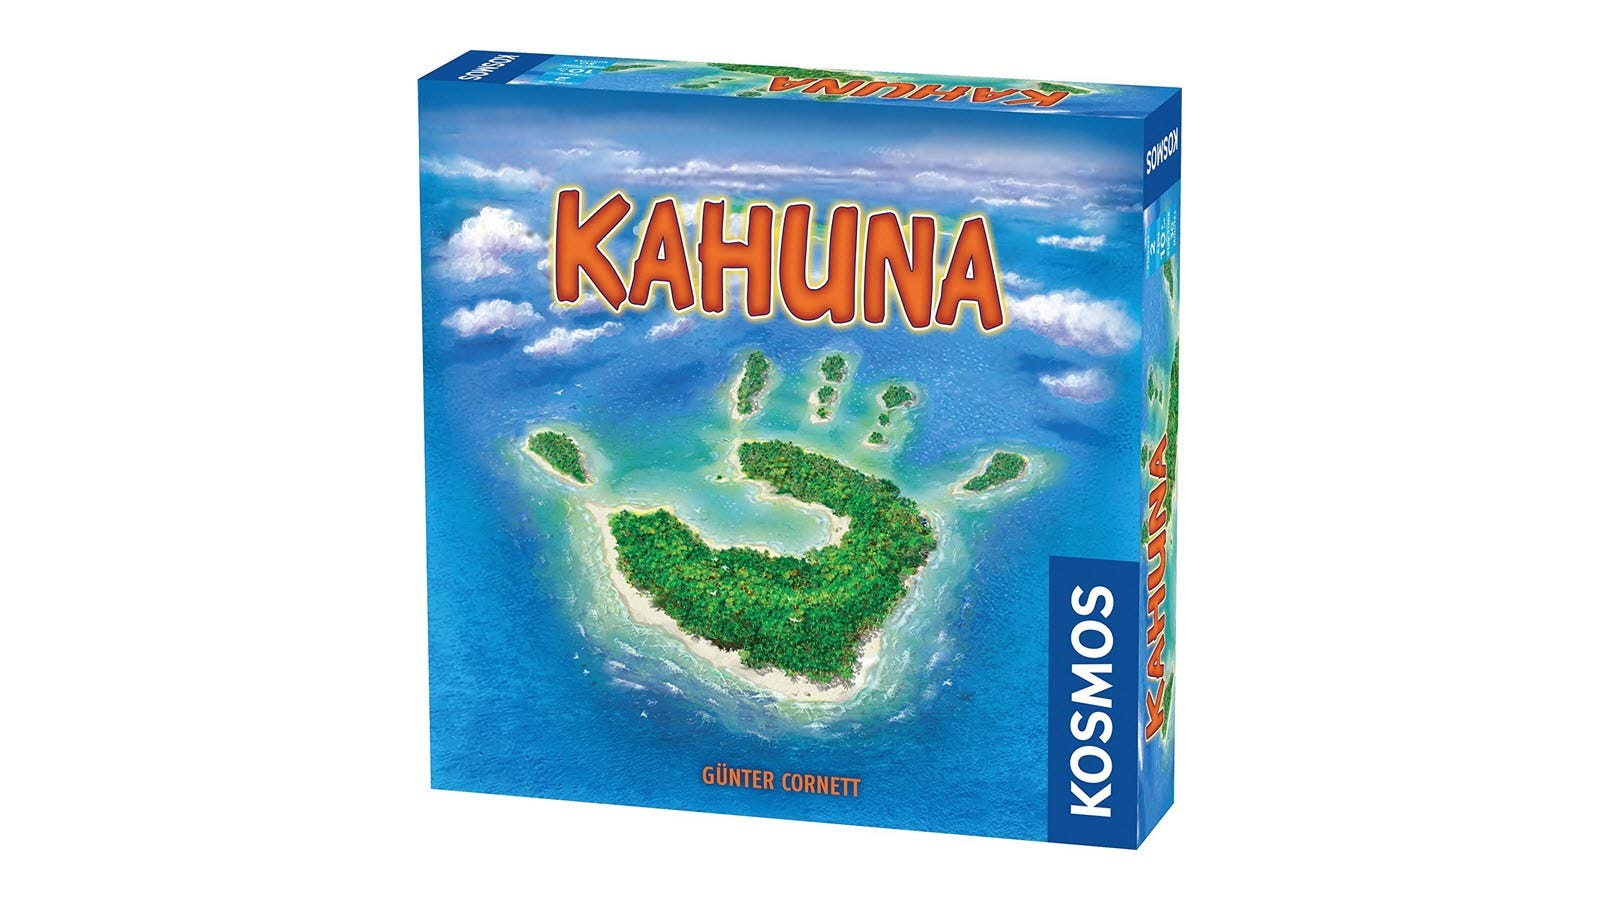 The Kahuna board game box, featuring a hand-shaped island.